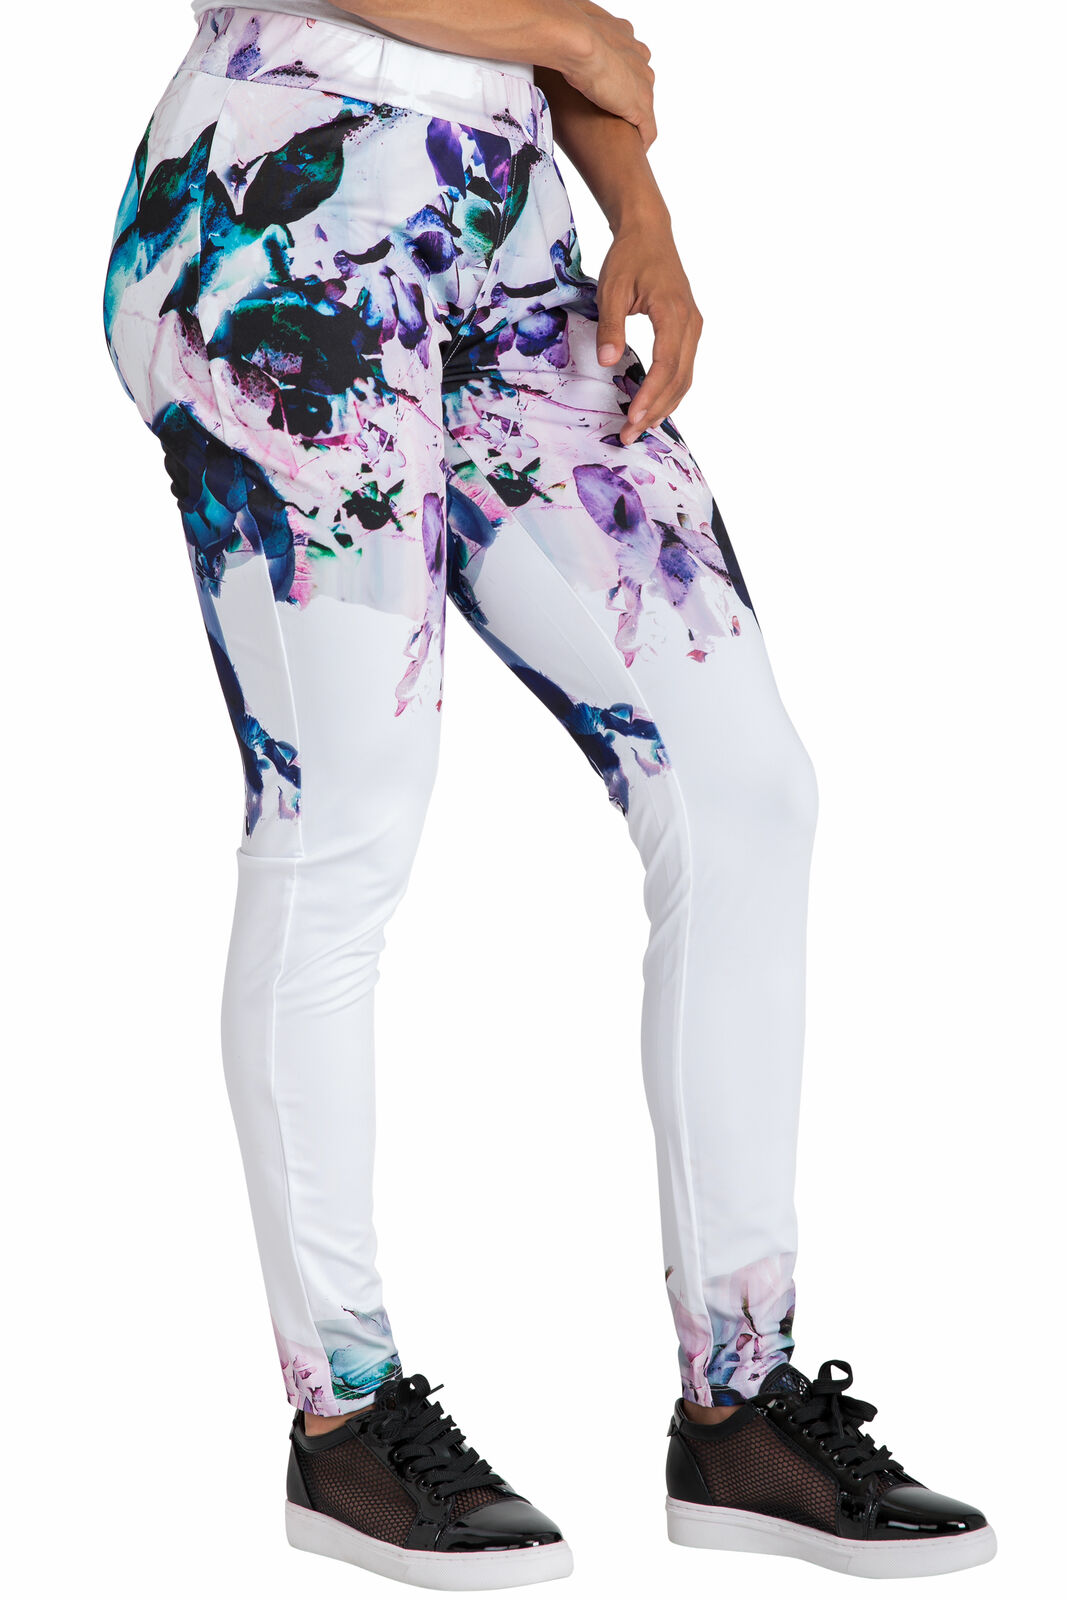 Poetic Justice Active Floral Print Poly Tricot Legging